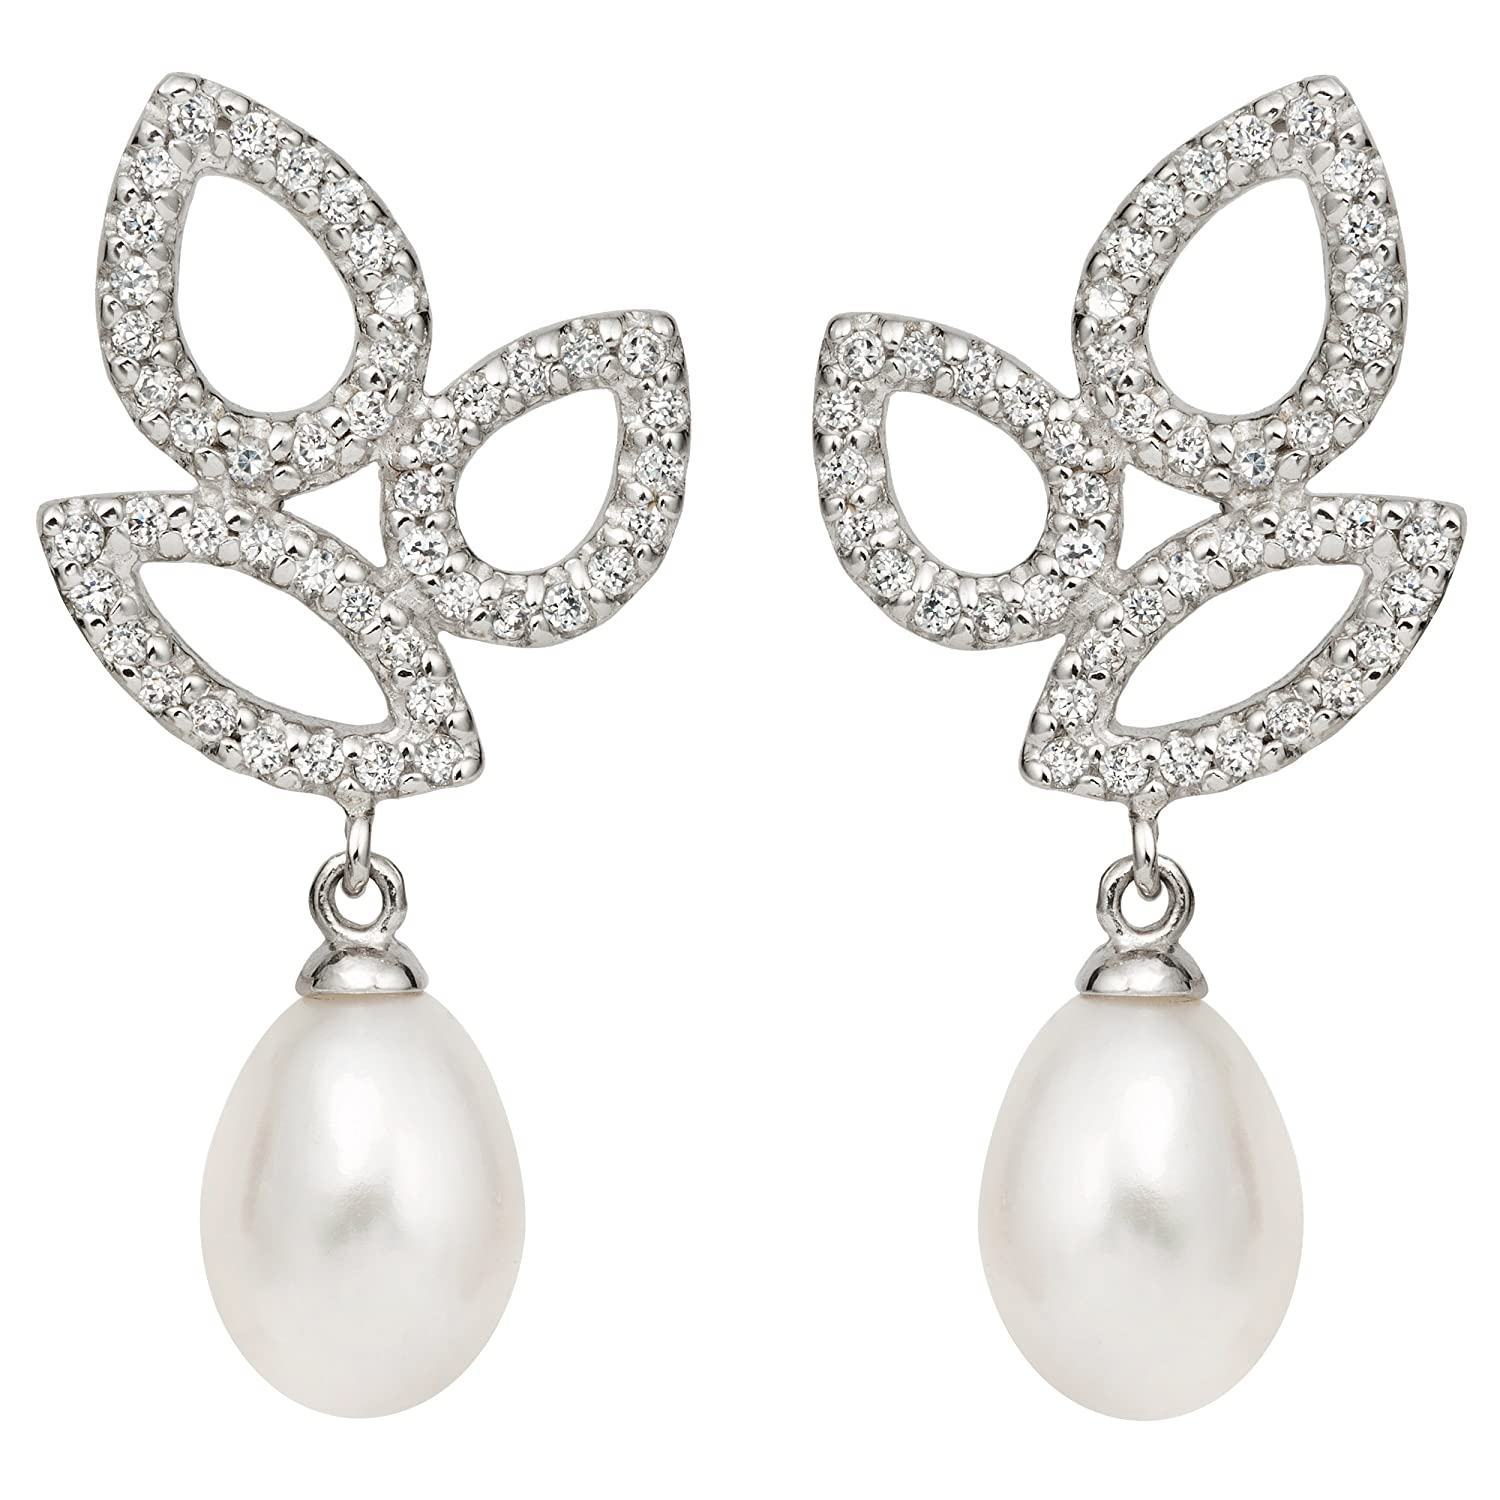 Sterling Silver Freshwater Cultured Pearl and Cubic Zirconia Drop Earrings (10-11mm) – Graduation Gift